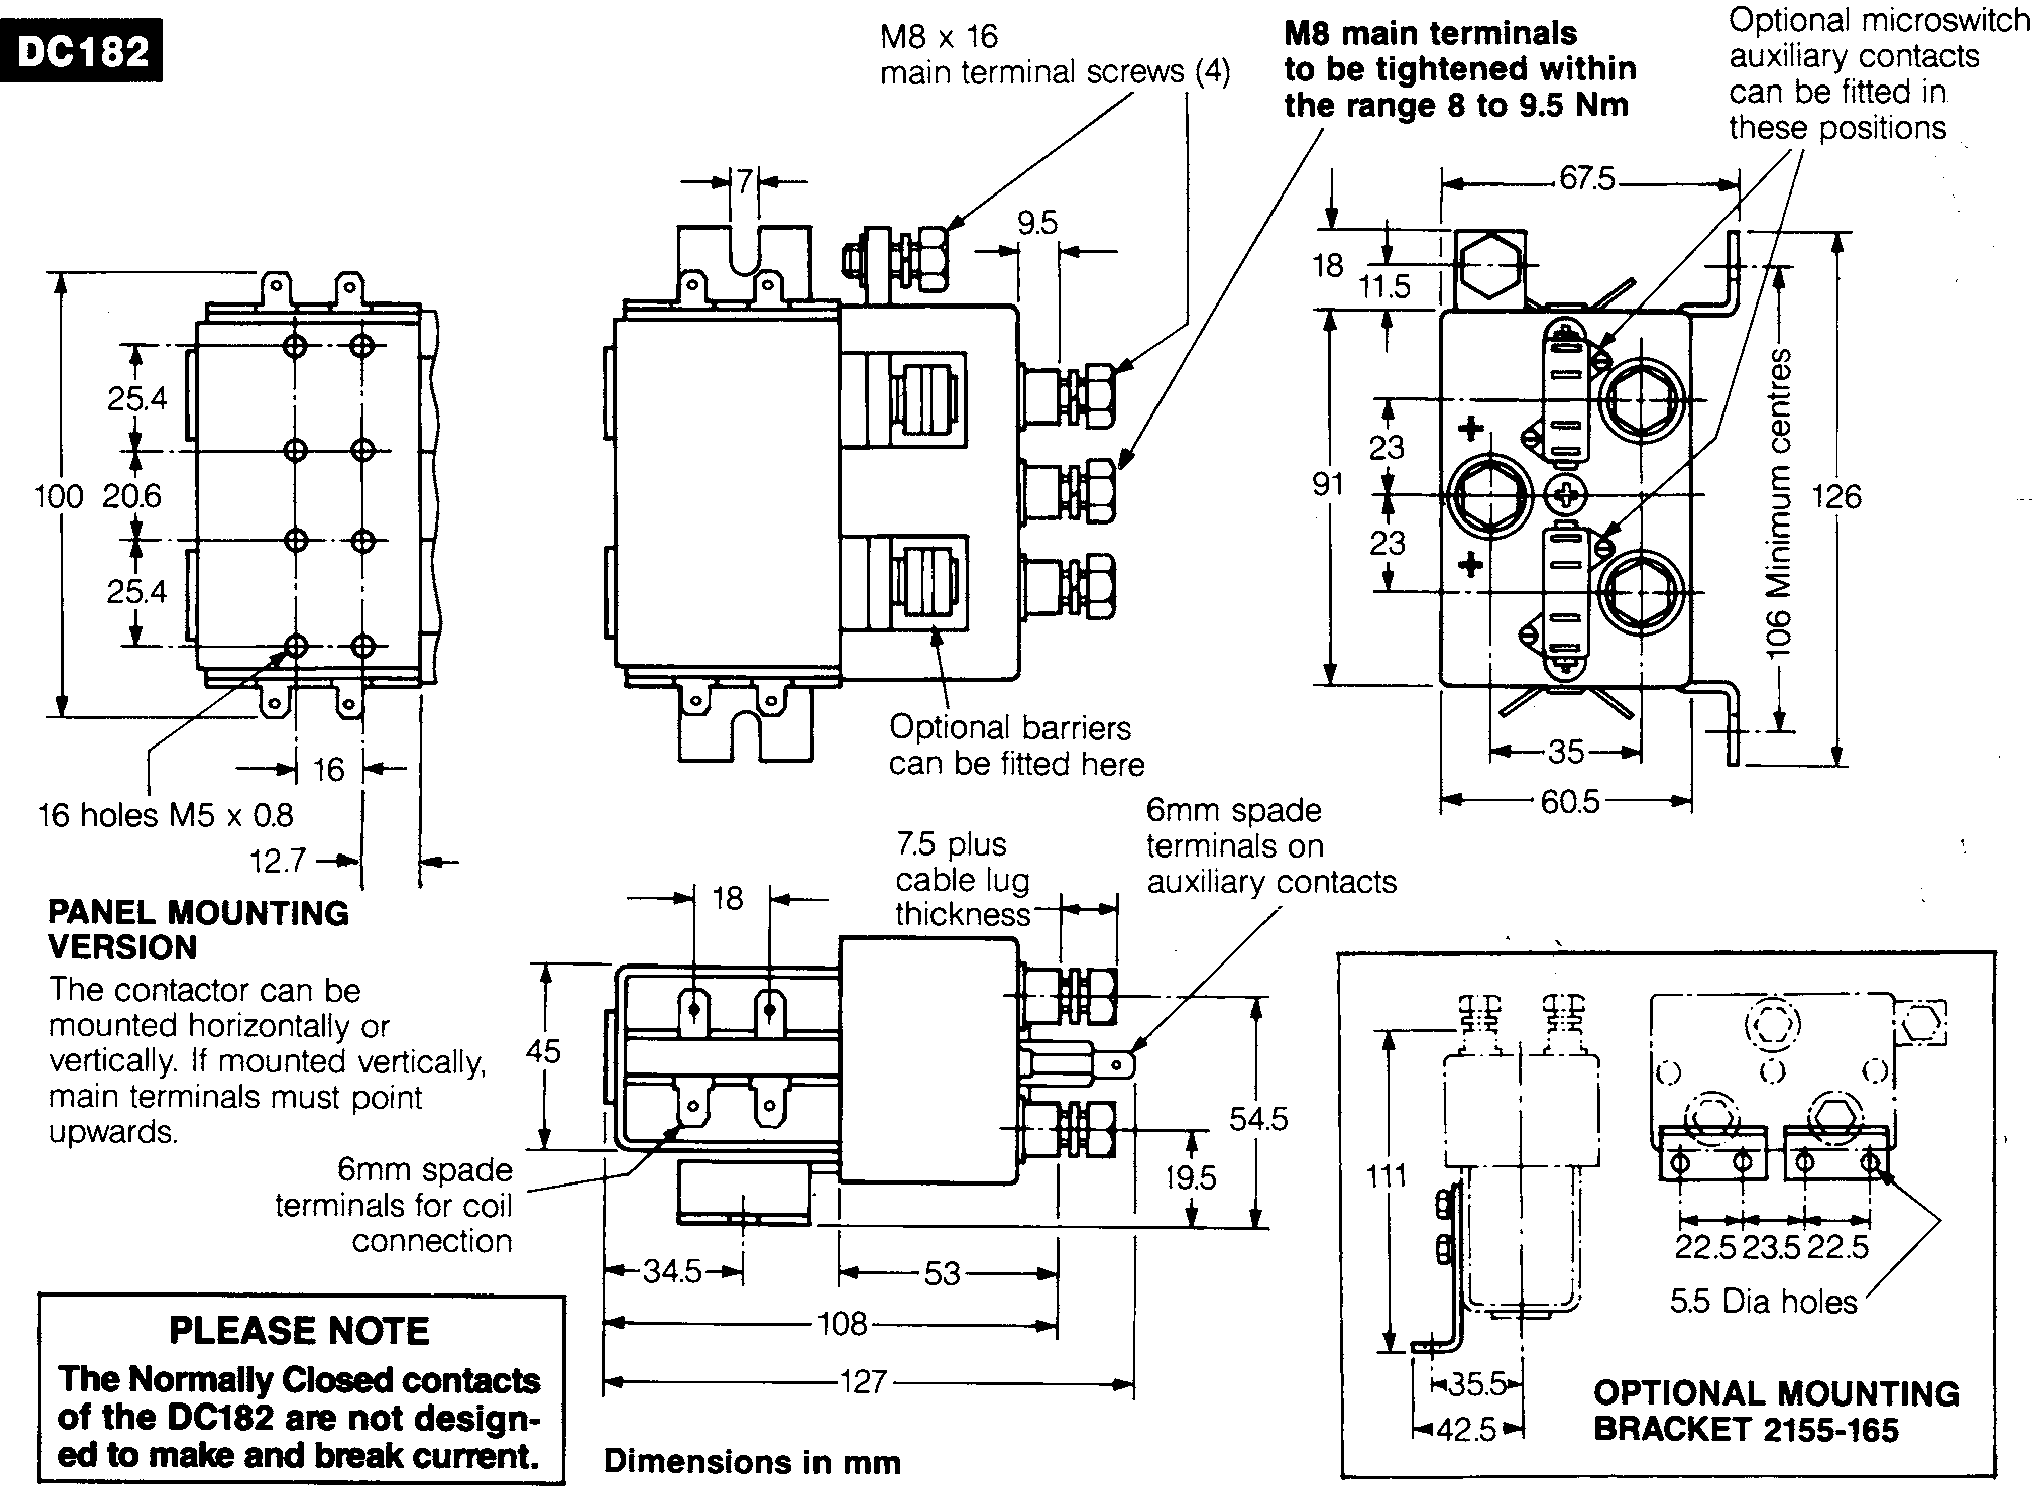 dimensions wiring diagram for reversing contactor the wiring diagram albright contactor wiring diagram at bayanpartner.co